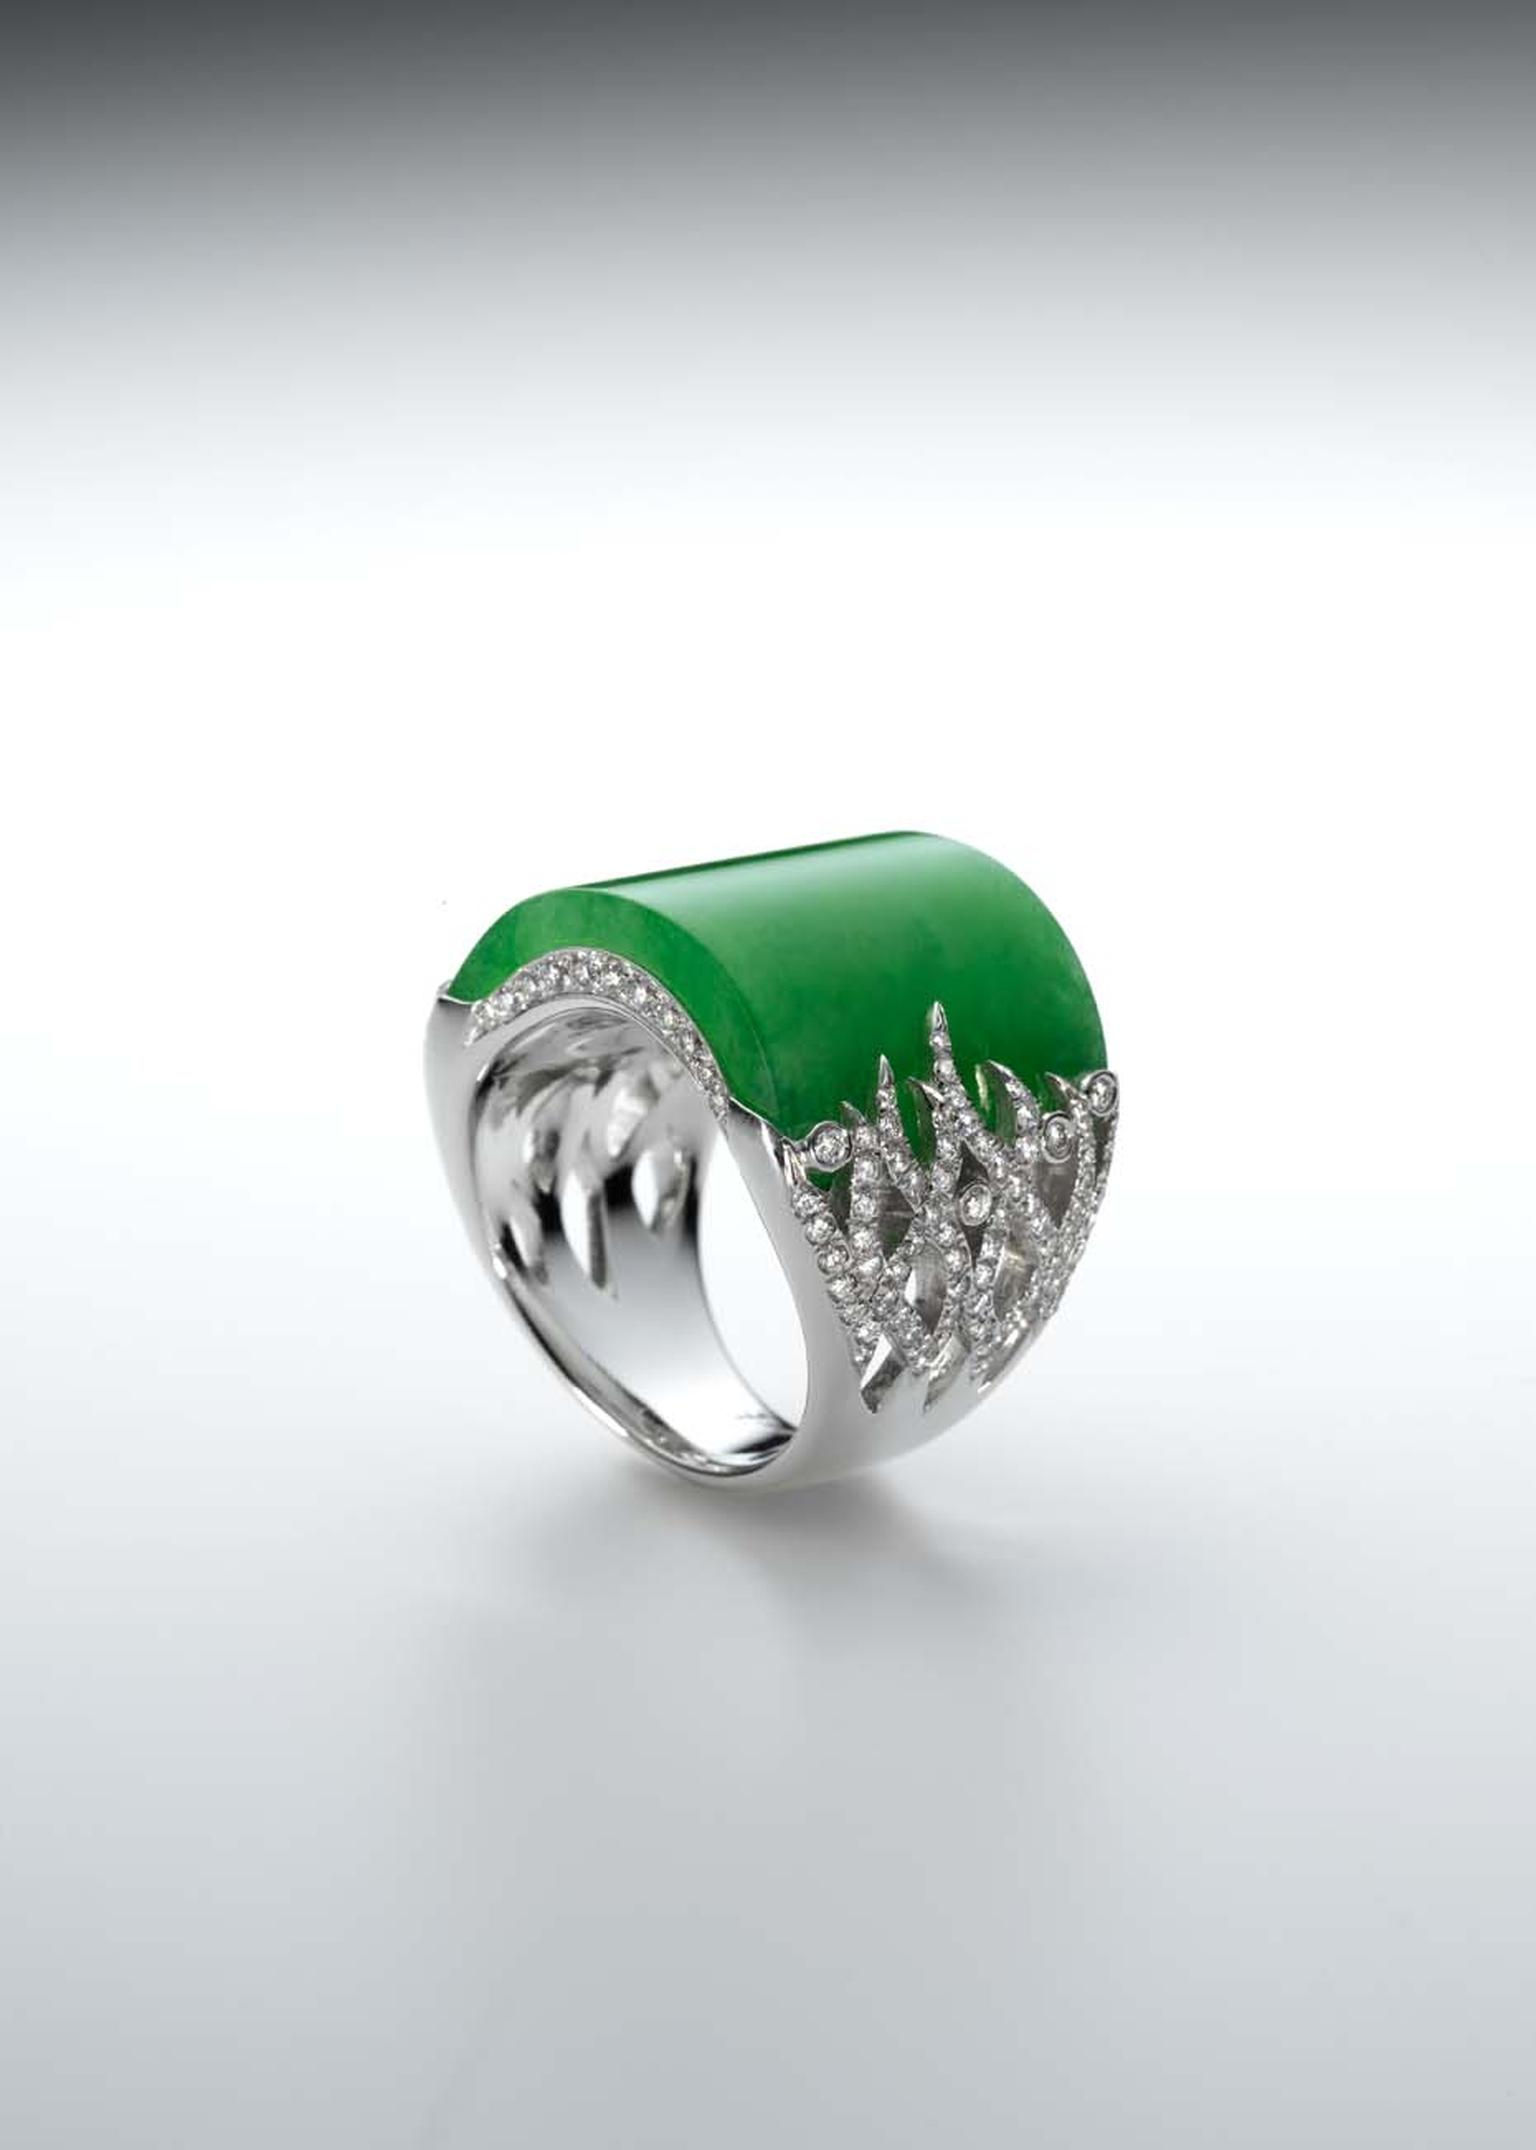 Smoothly polished jadeite ring held by tiny tendrils of diamonds set in white gold, from Samuel Kung's collection.